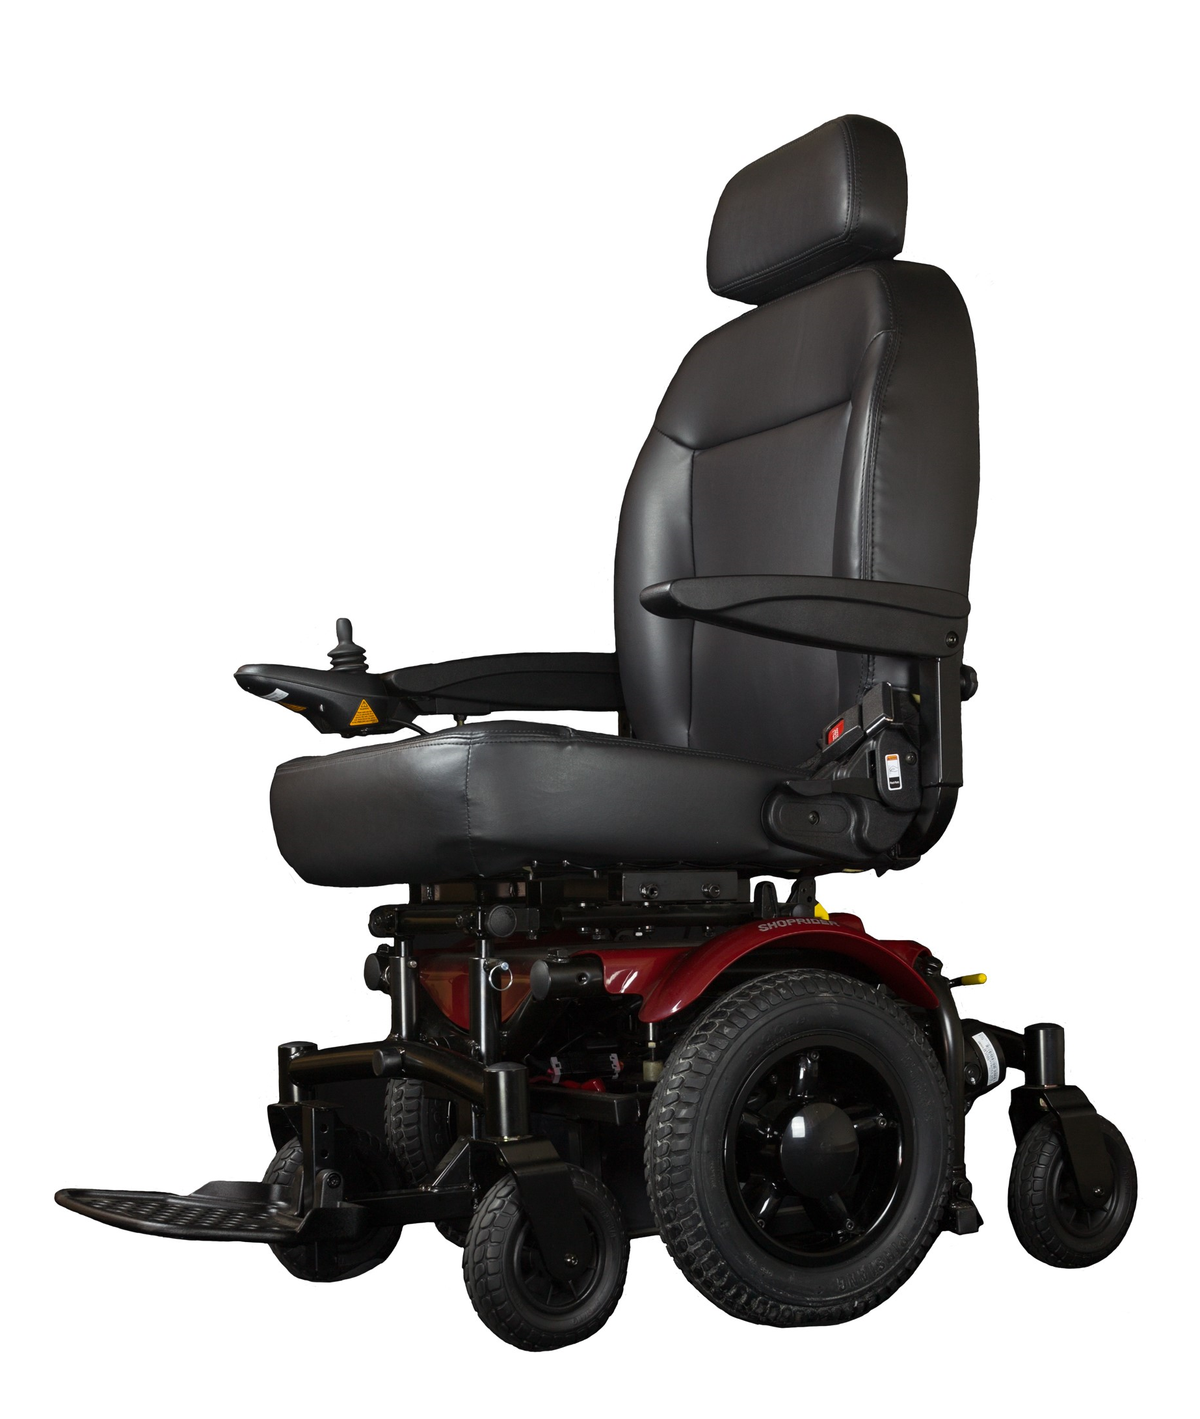 motorized easy chair target glider cushions these cheap power wheelchairs save customers thousands